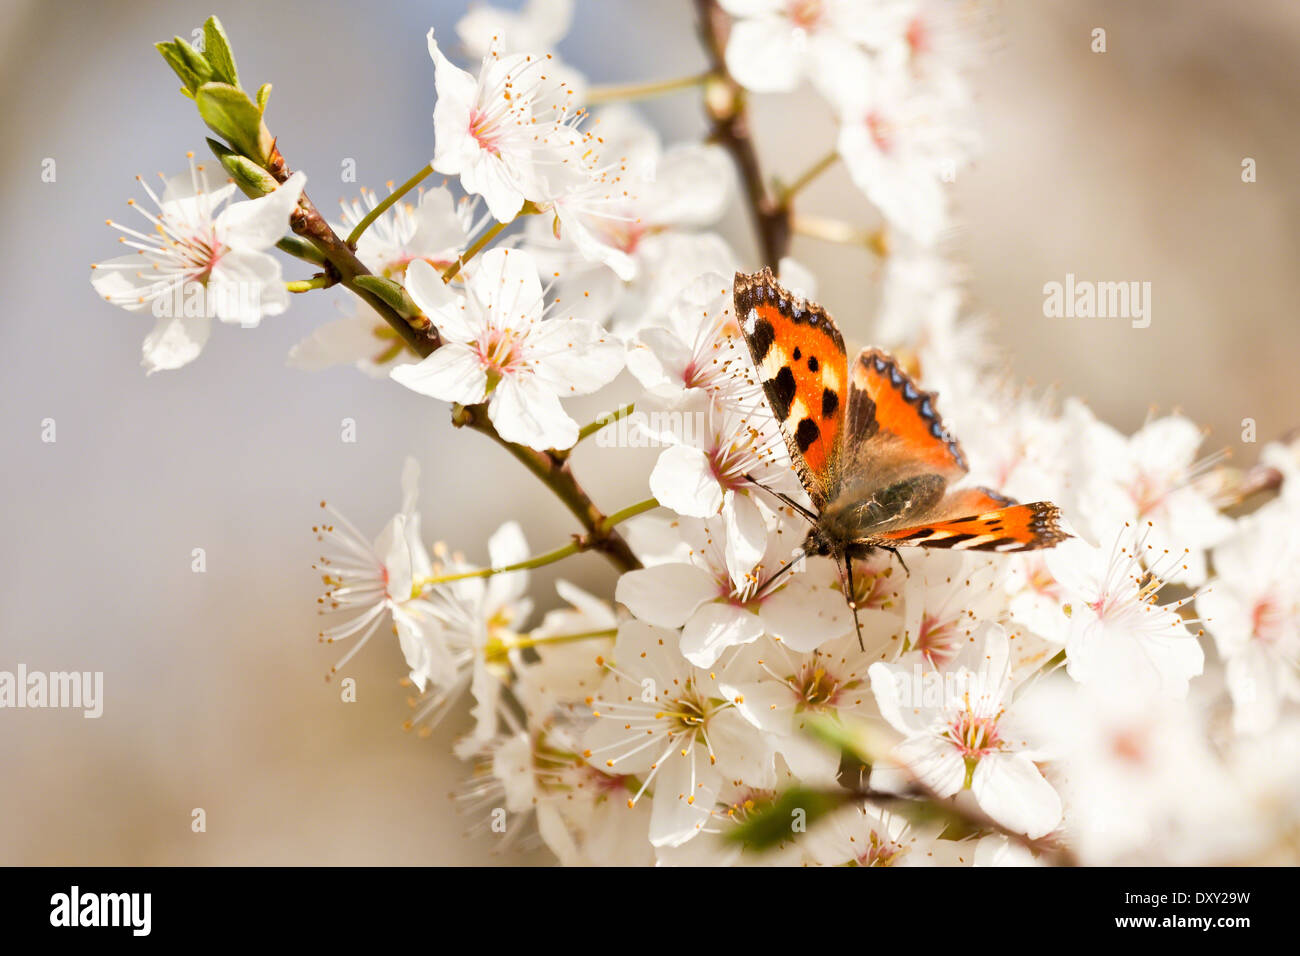 Small tortoiseshell butterfly on a flowering branch of blackthorn - Stock Image